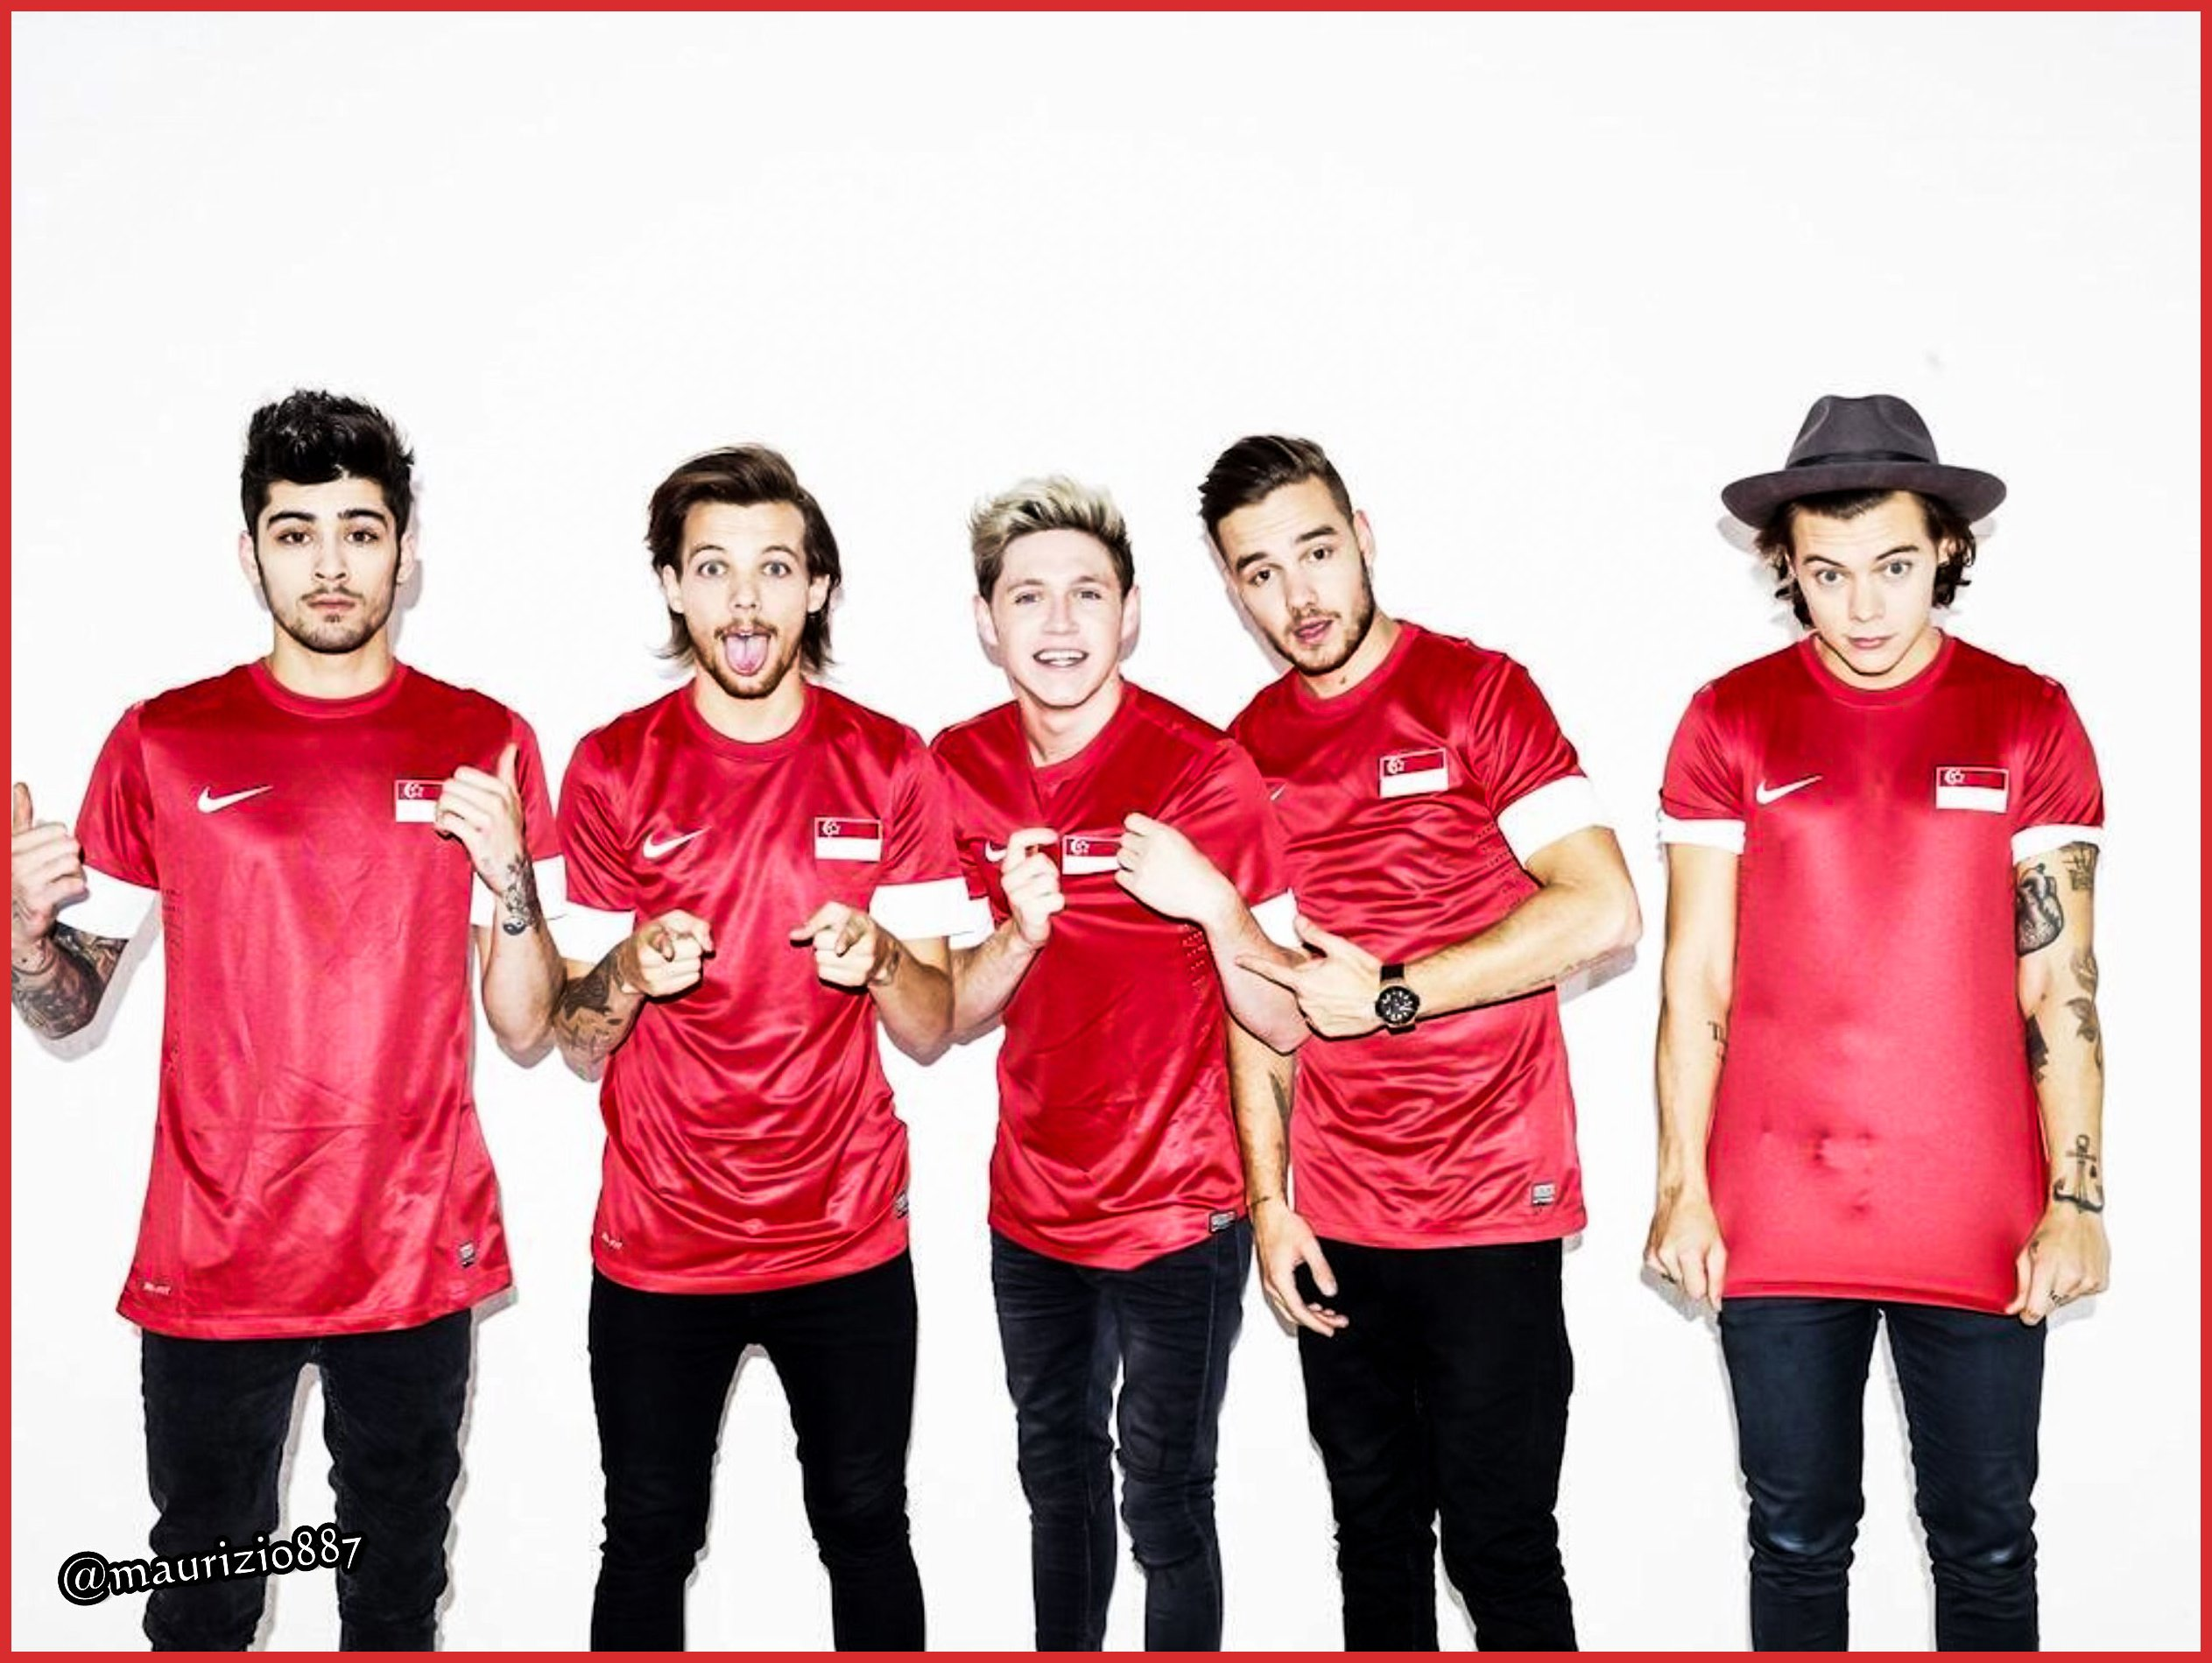 one-direction-photoshoot-2014-one-direction-37098127-2526-1899 jpgOne Direction Photoshoot 2014